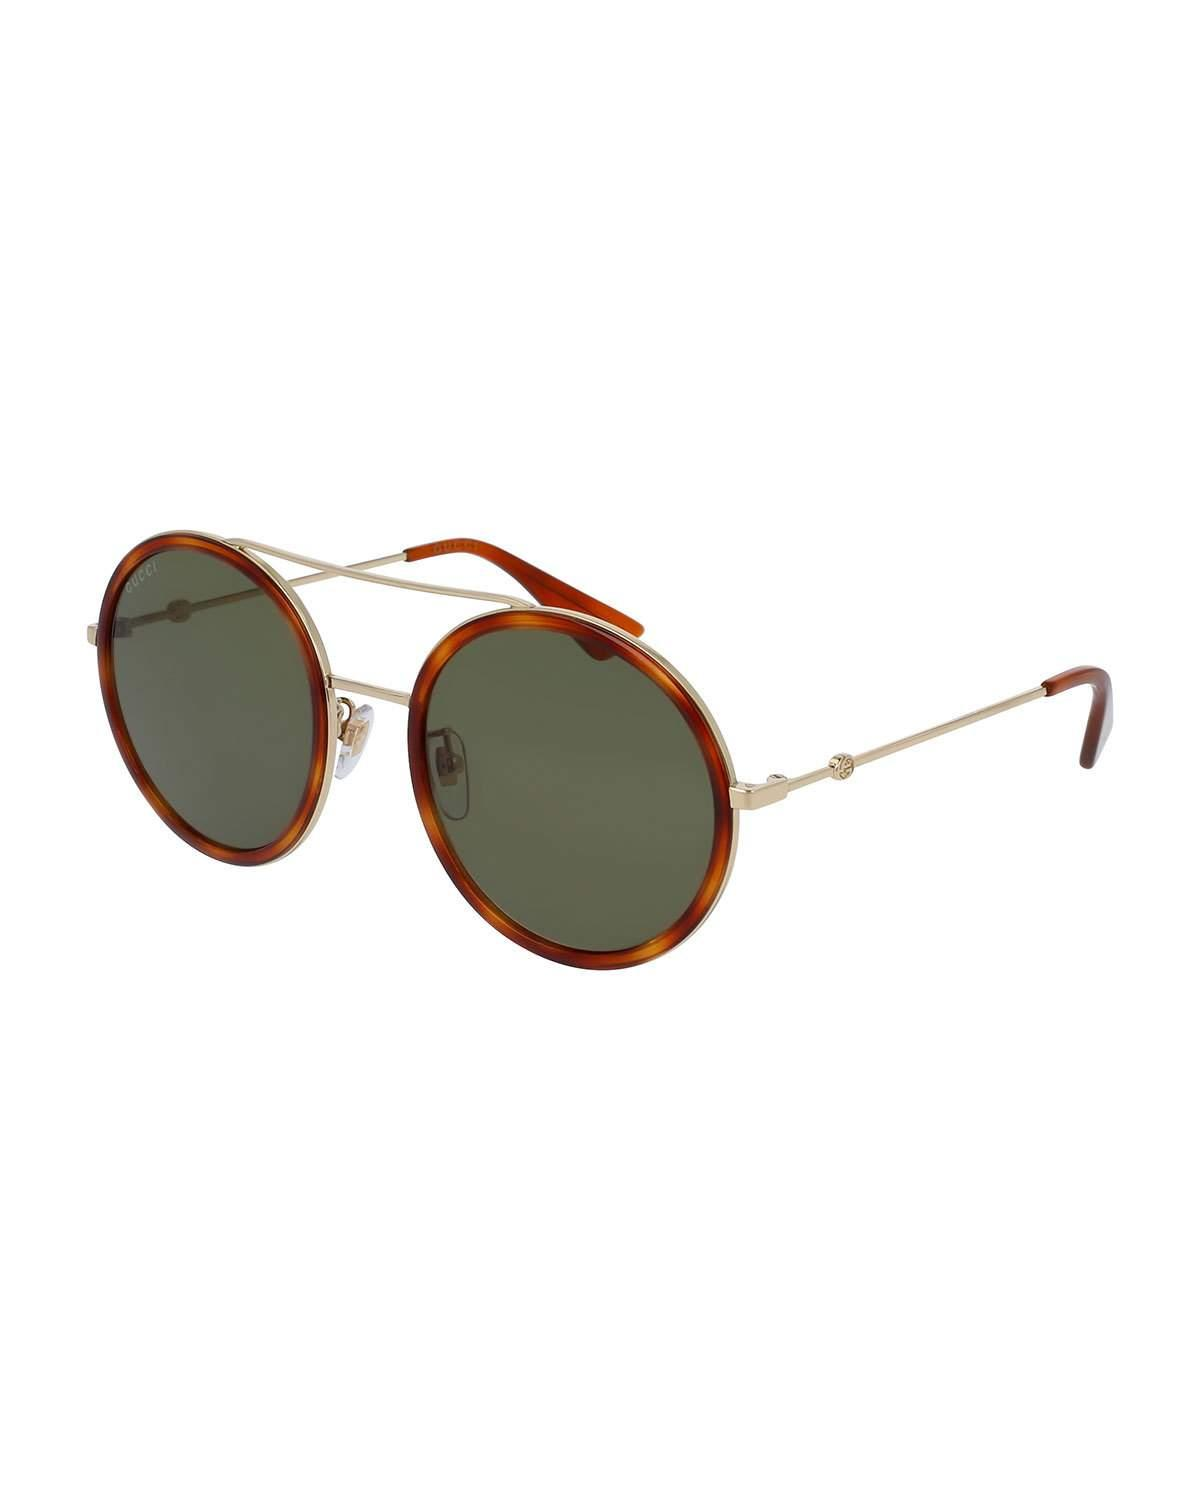 2fc2eefa5d6 Gucci. Women s Round Sylvie Web Sunglasses.  400 From Neiman Marcus